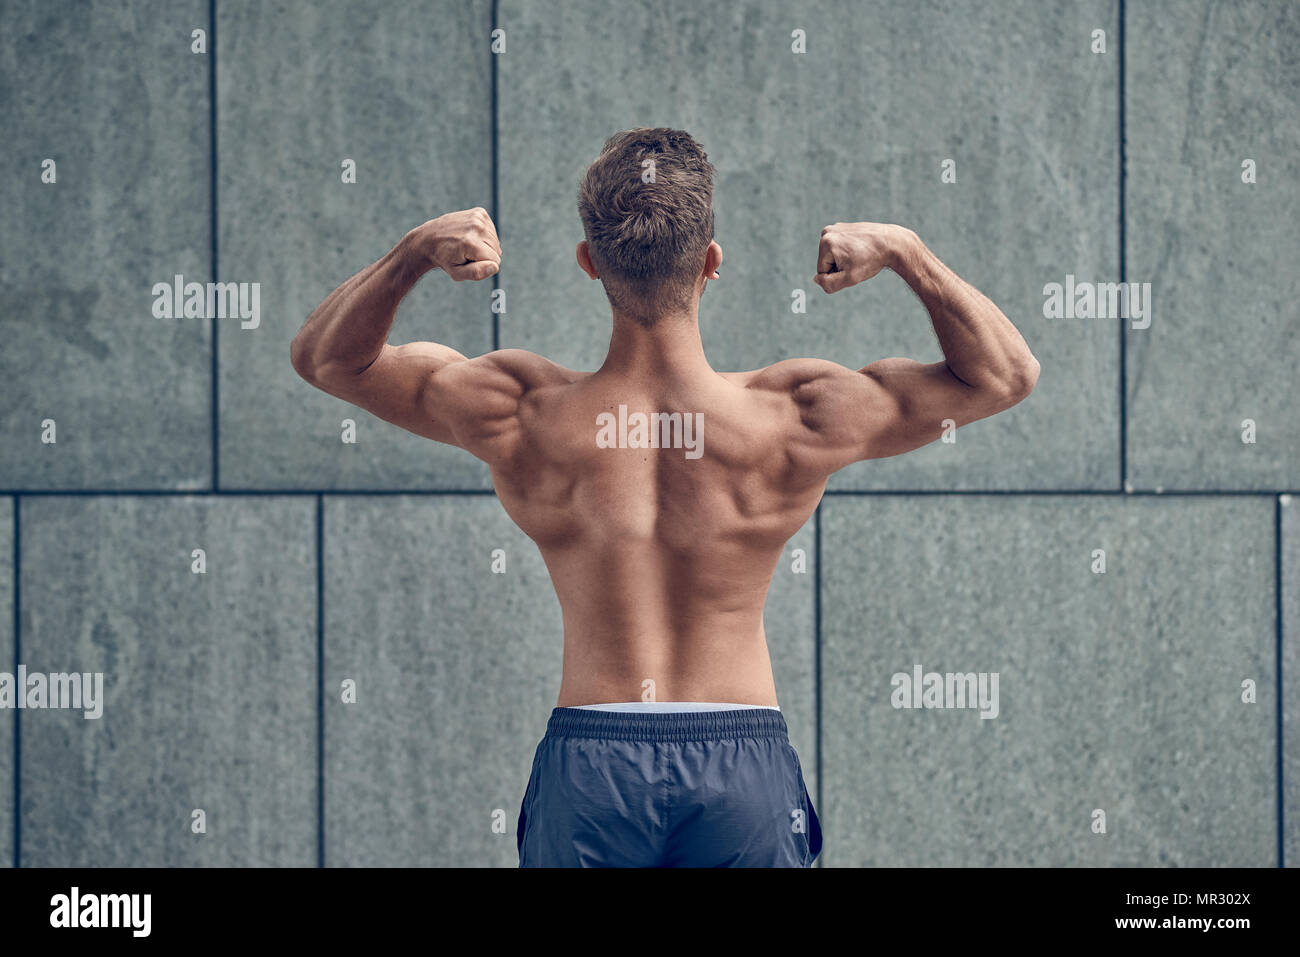 Young male bodybuilder posing with his back to the camera - Stock Image